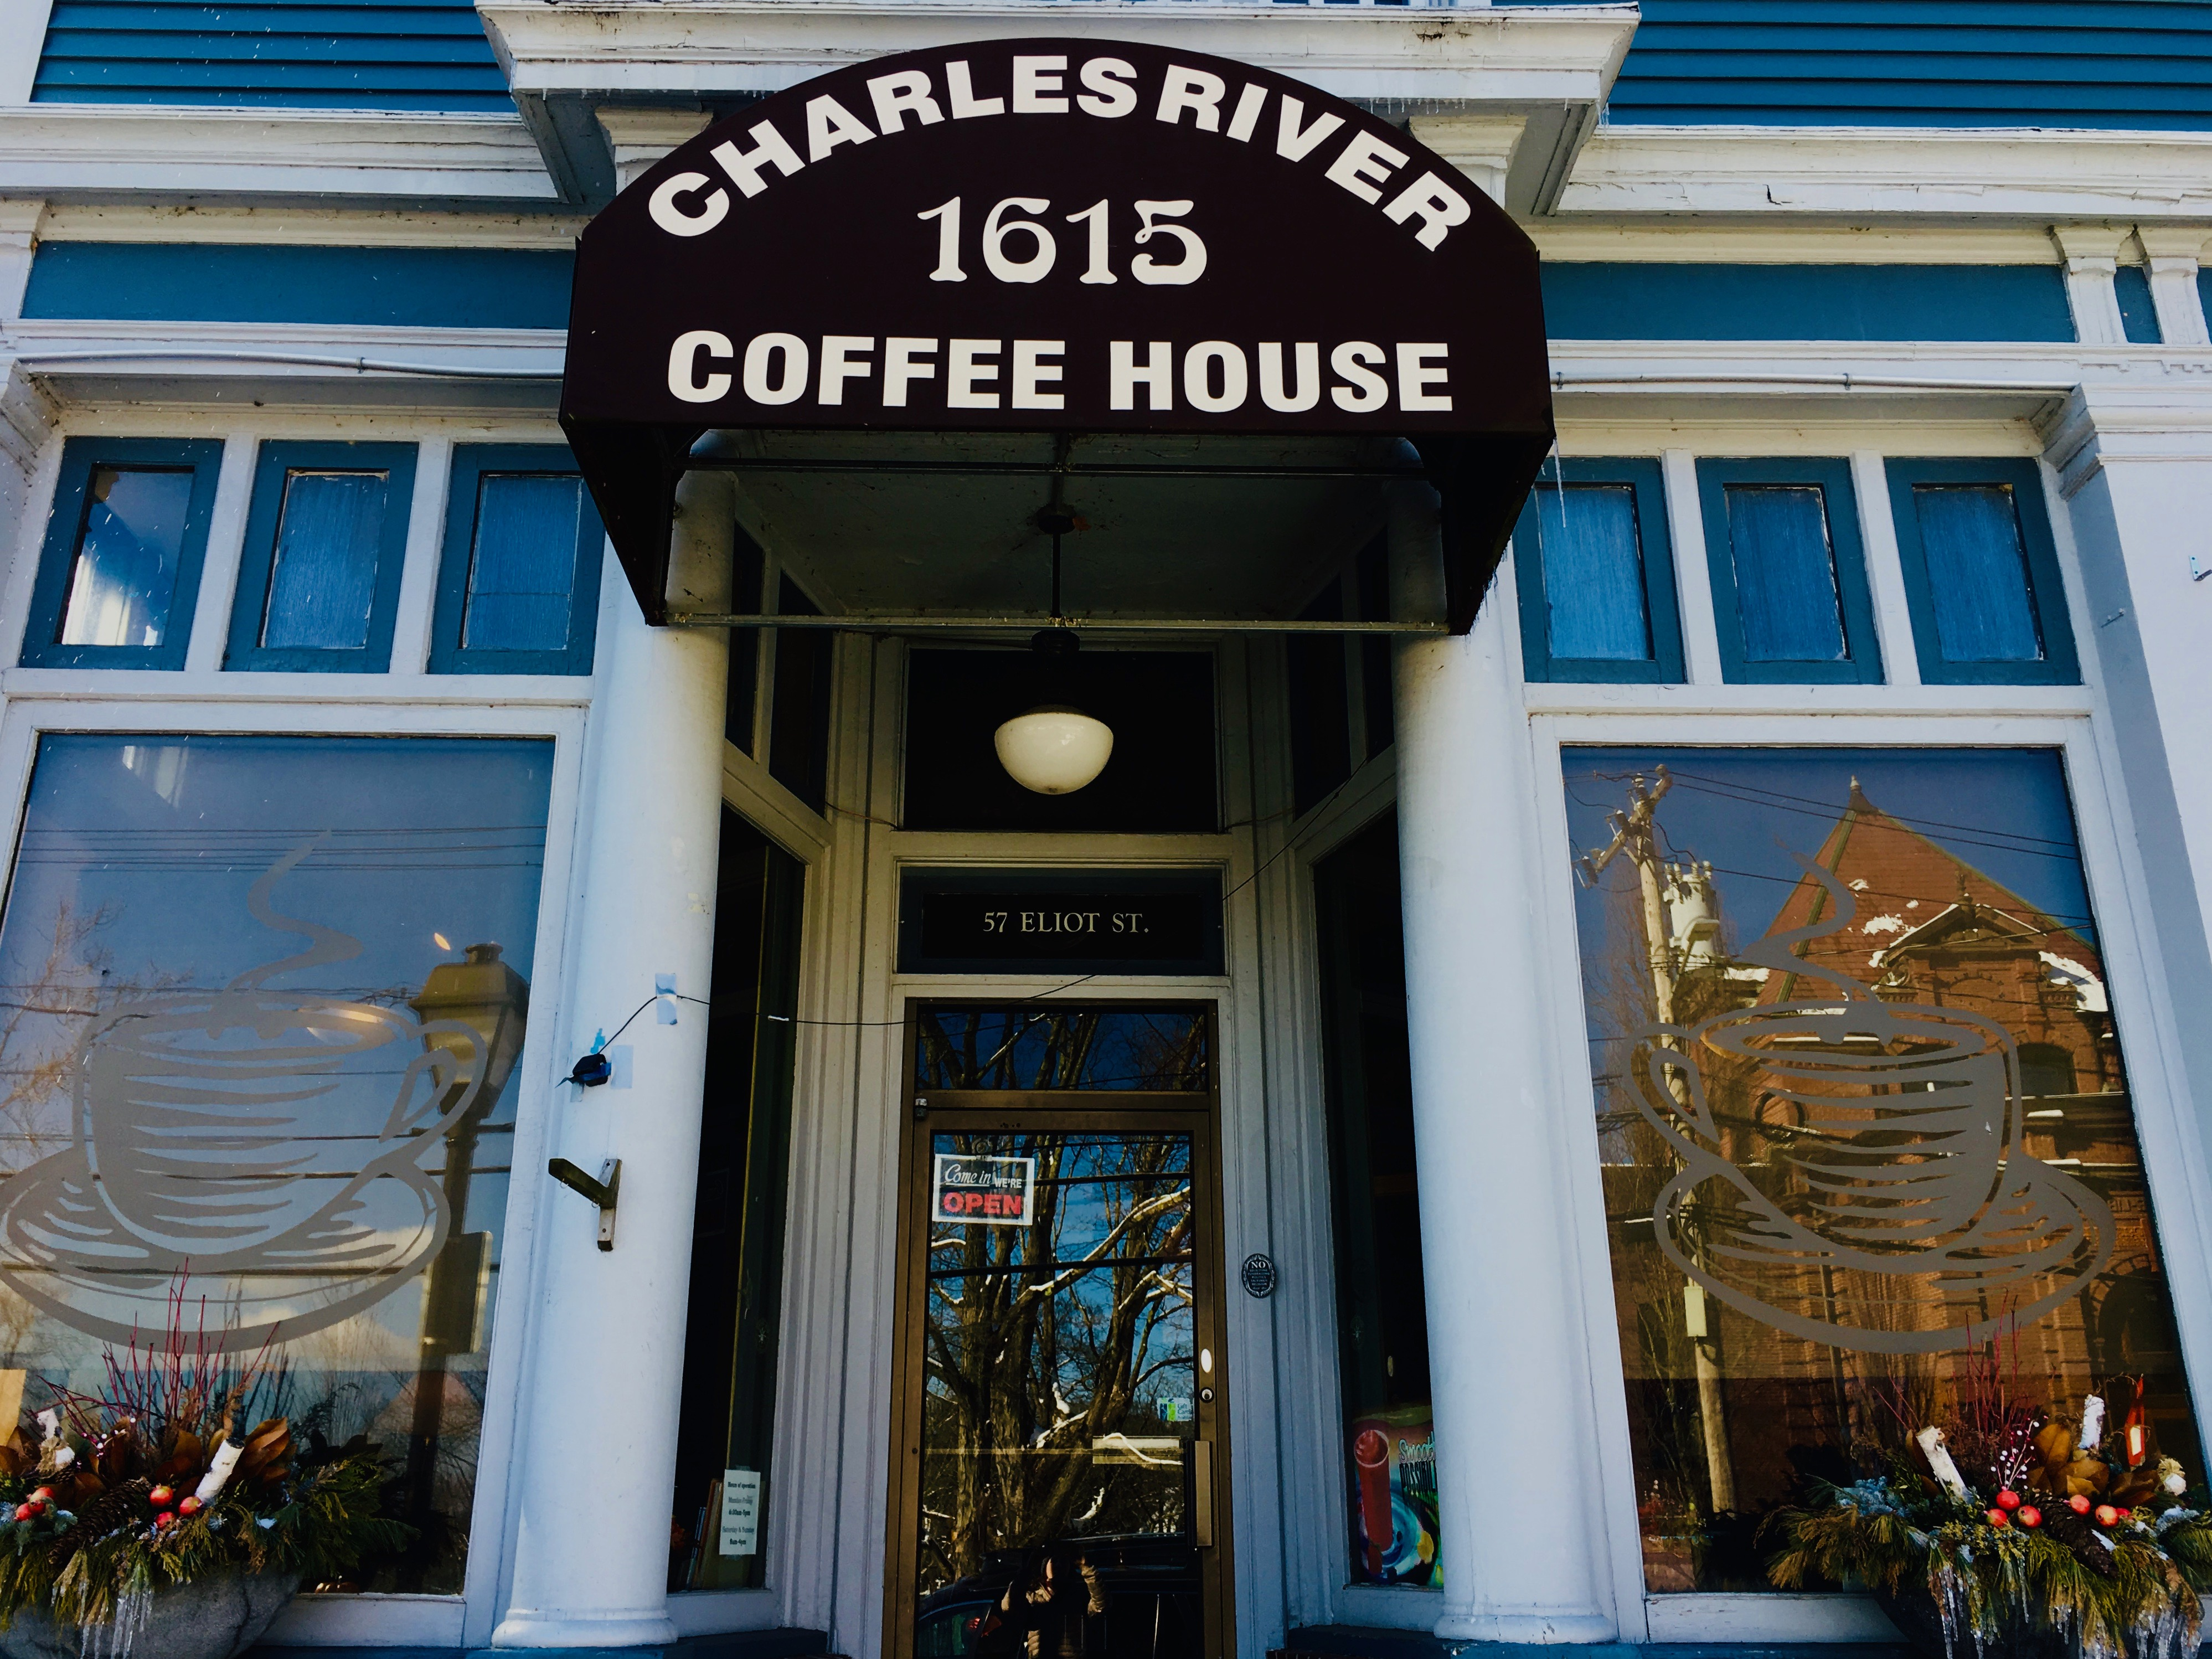 Charles River Coffee House, Natick